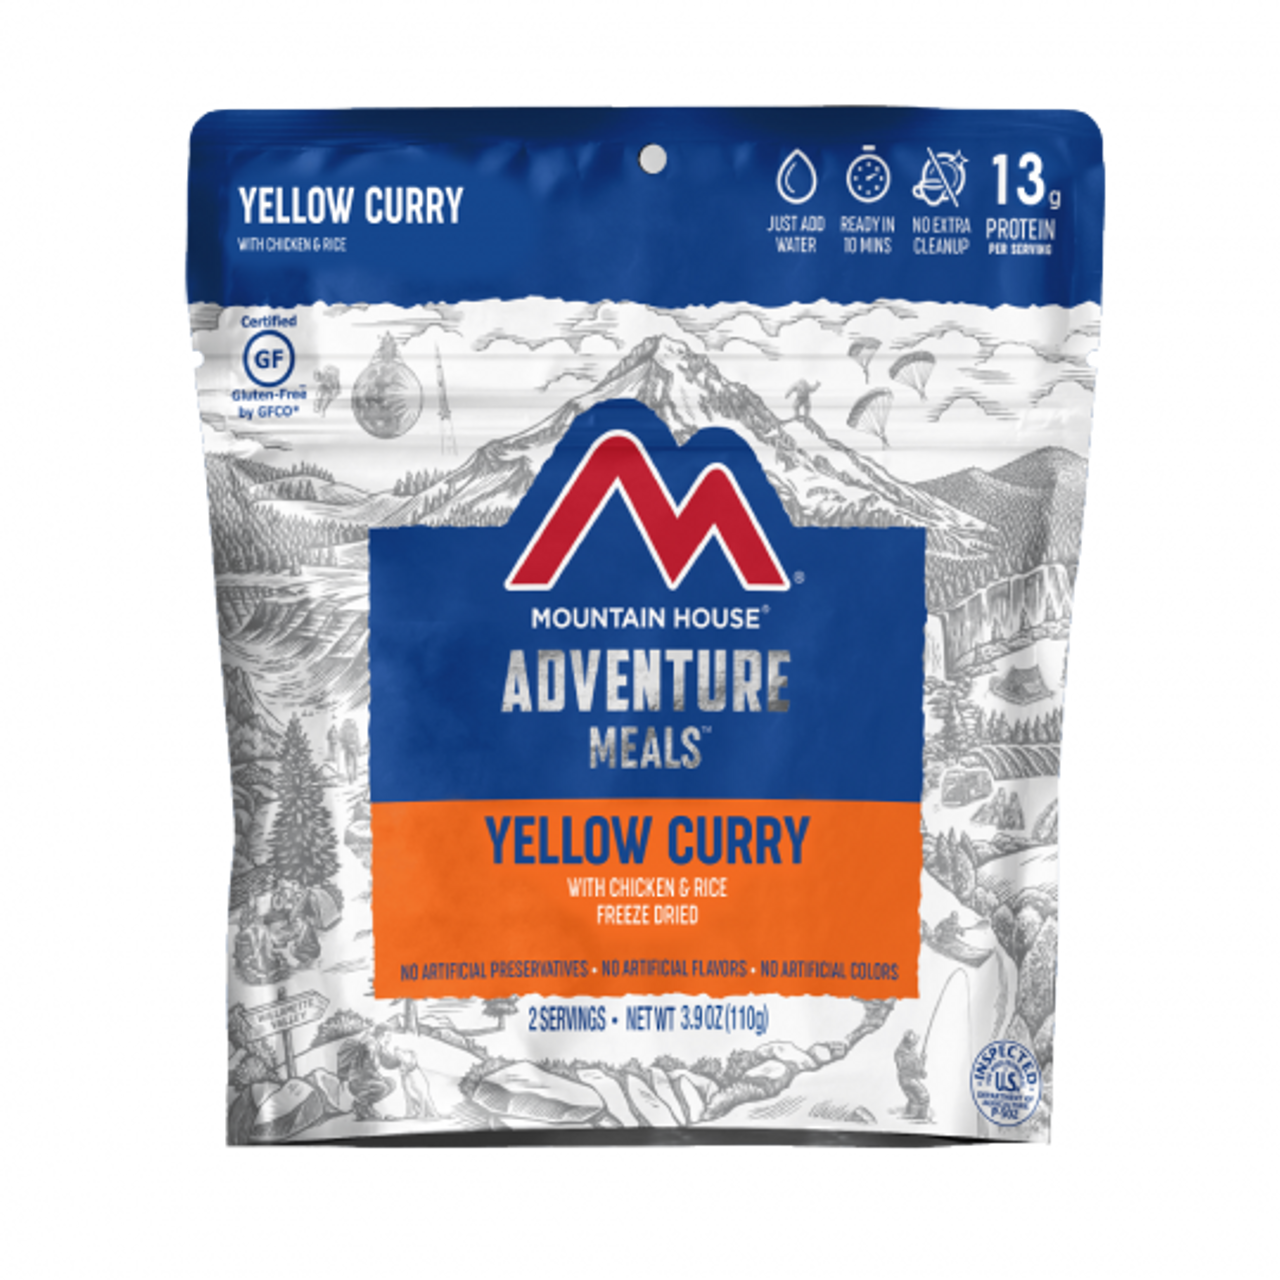 Mountain House Yellow Curry with Chicken & Rice Pouch